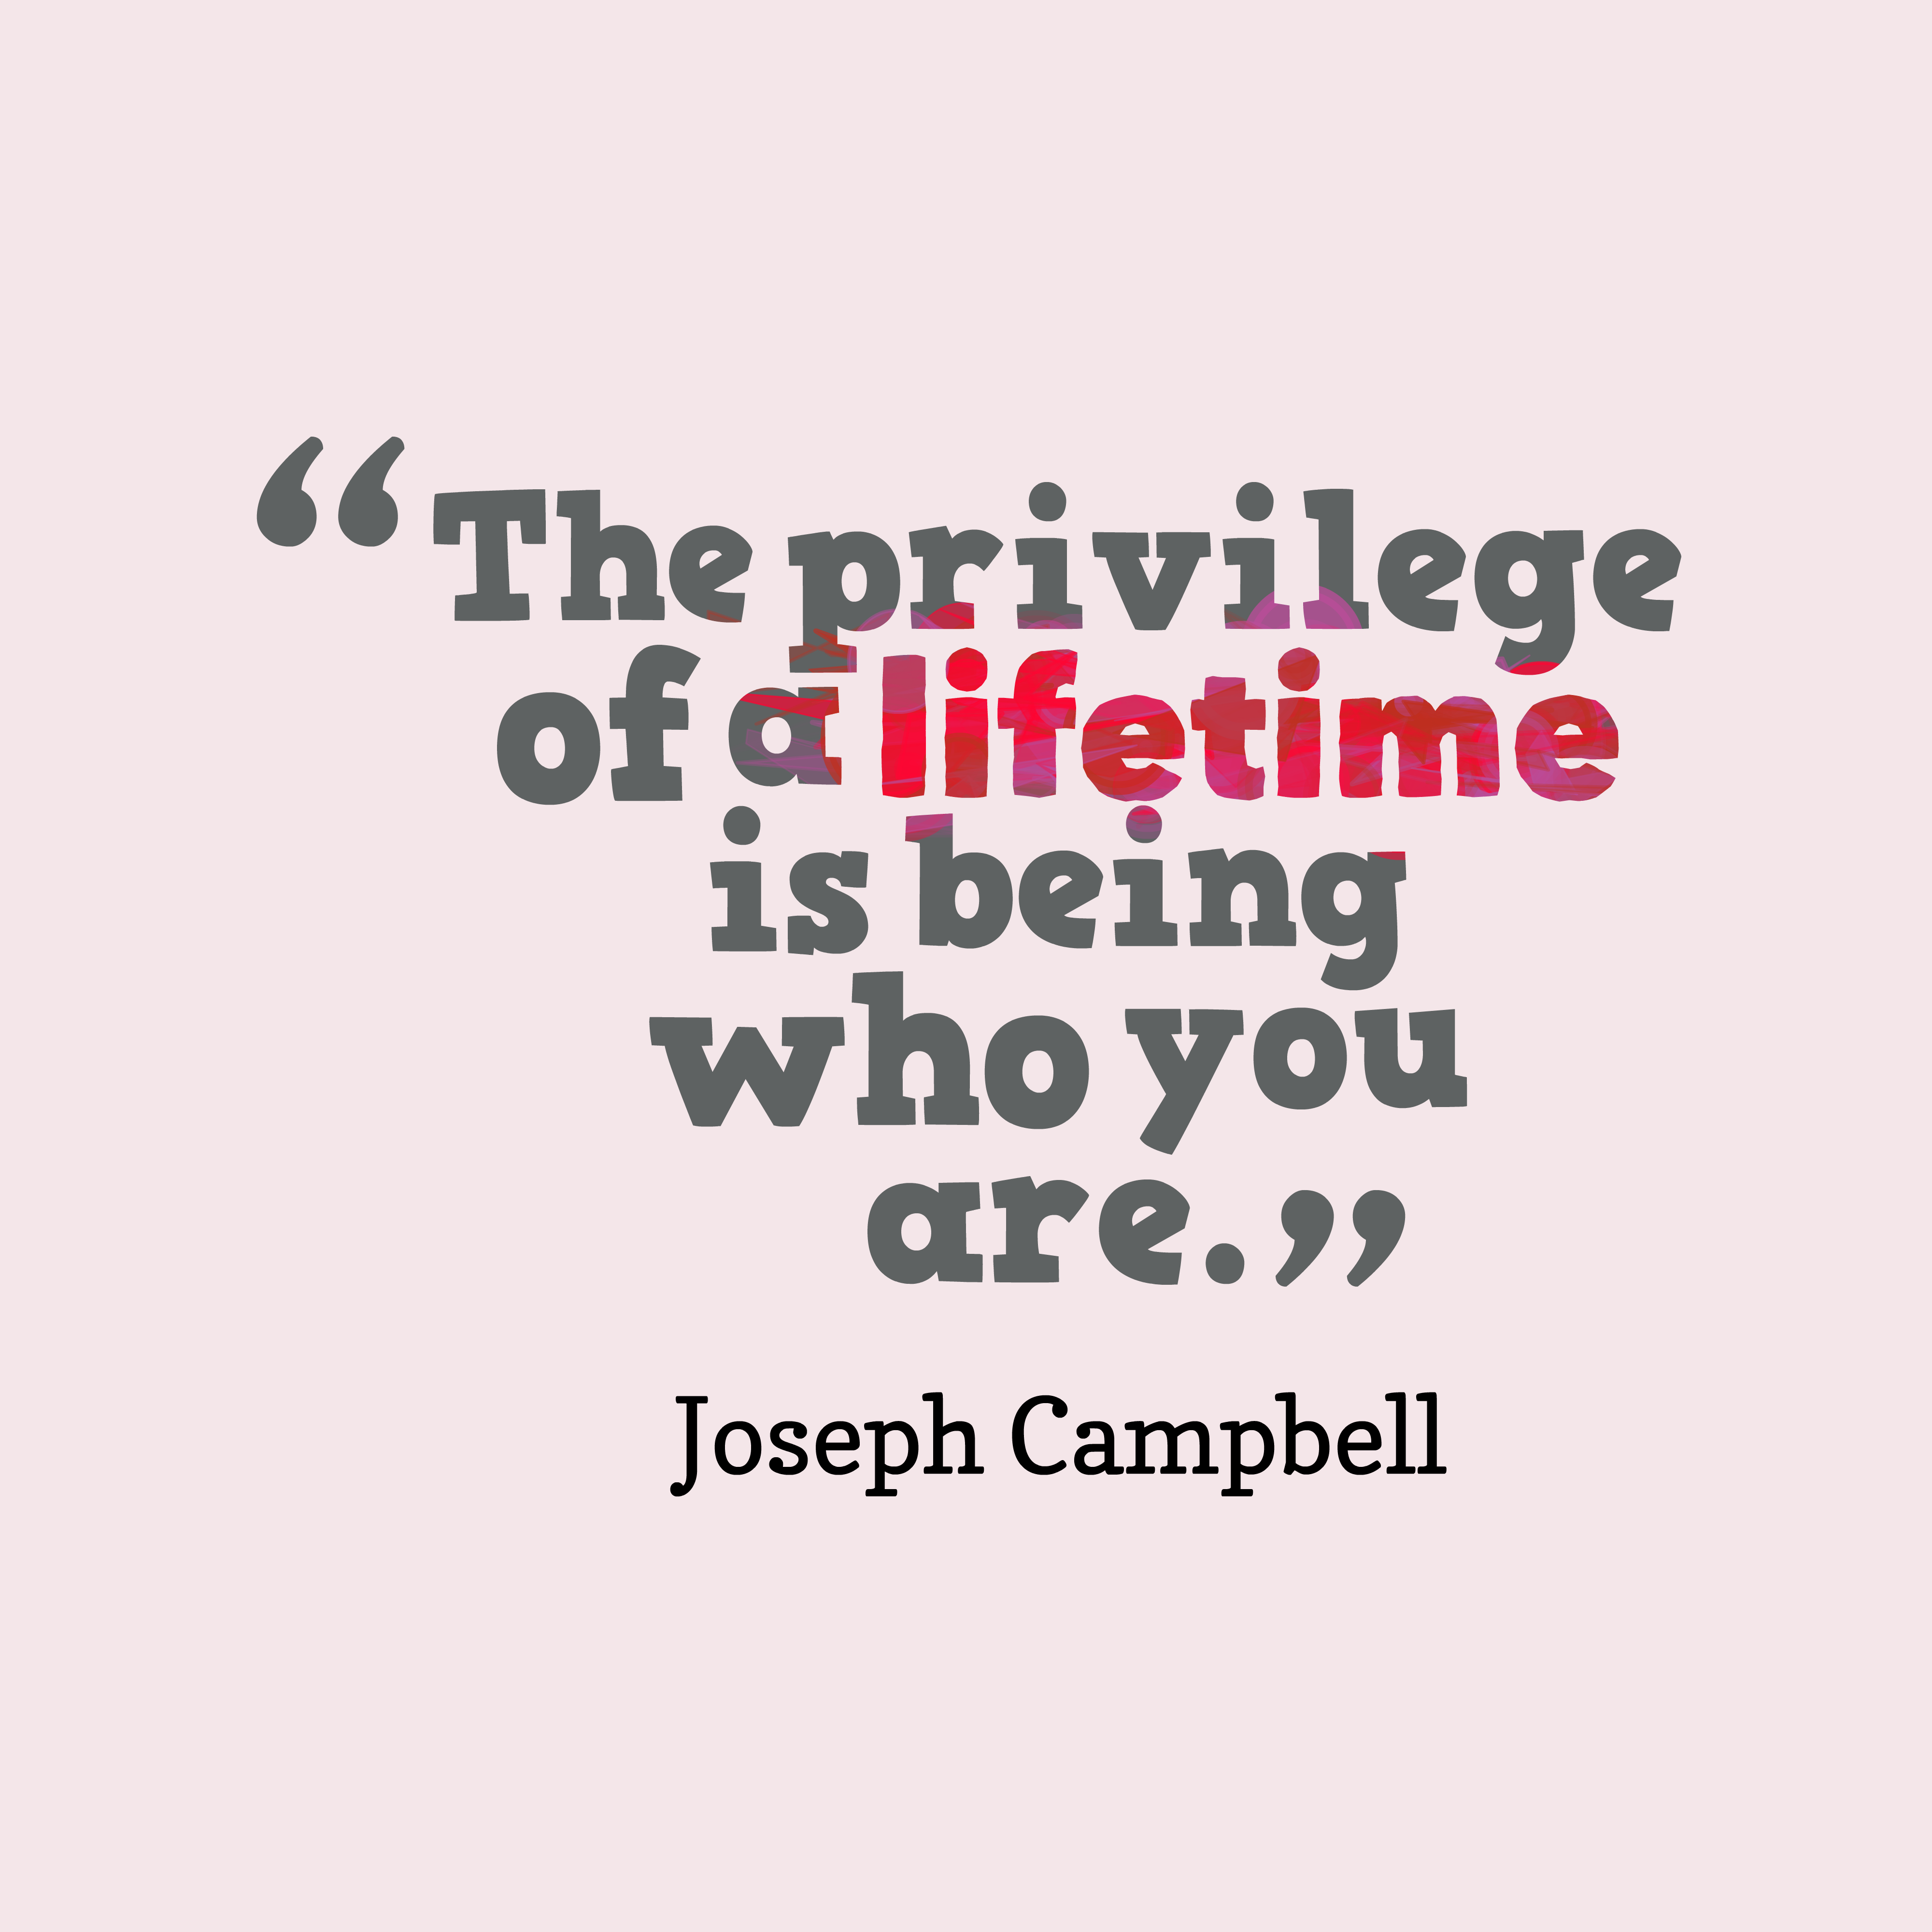 Quotes image of The privilege of a lifetime is being who you are.